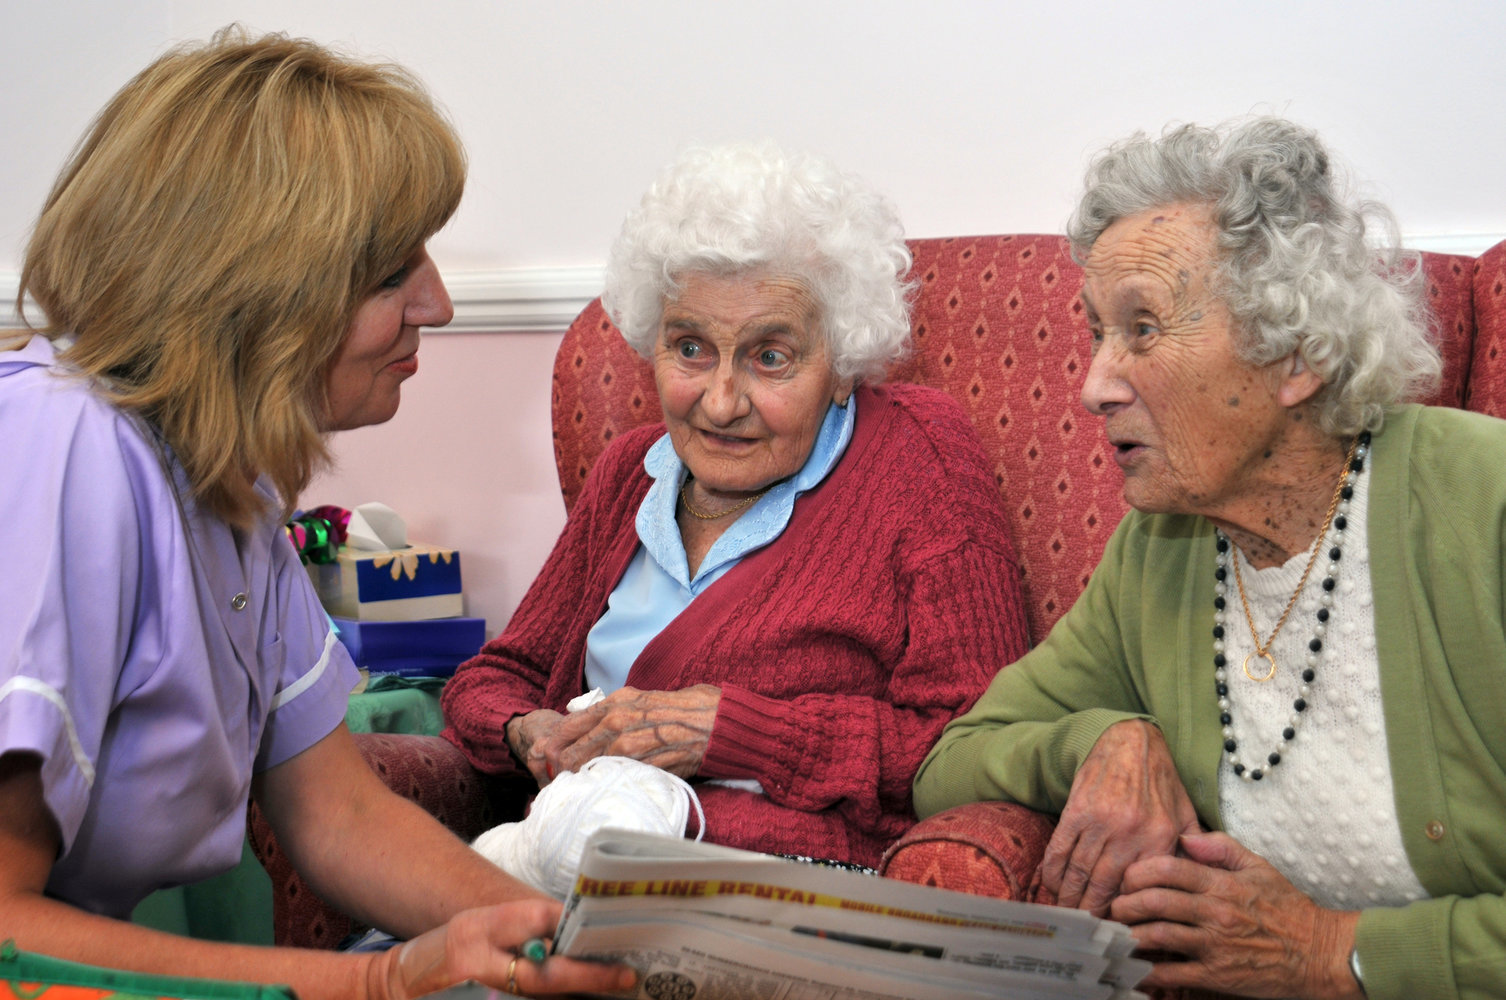 Residents and Carers look at newspaper